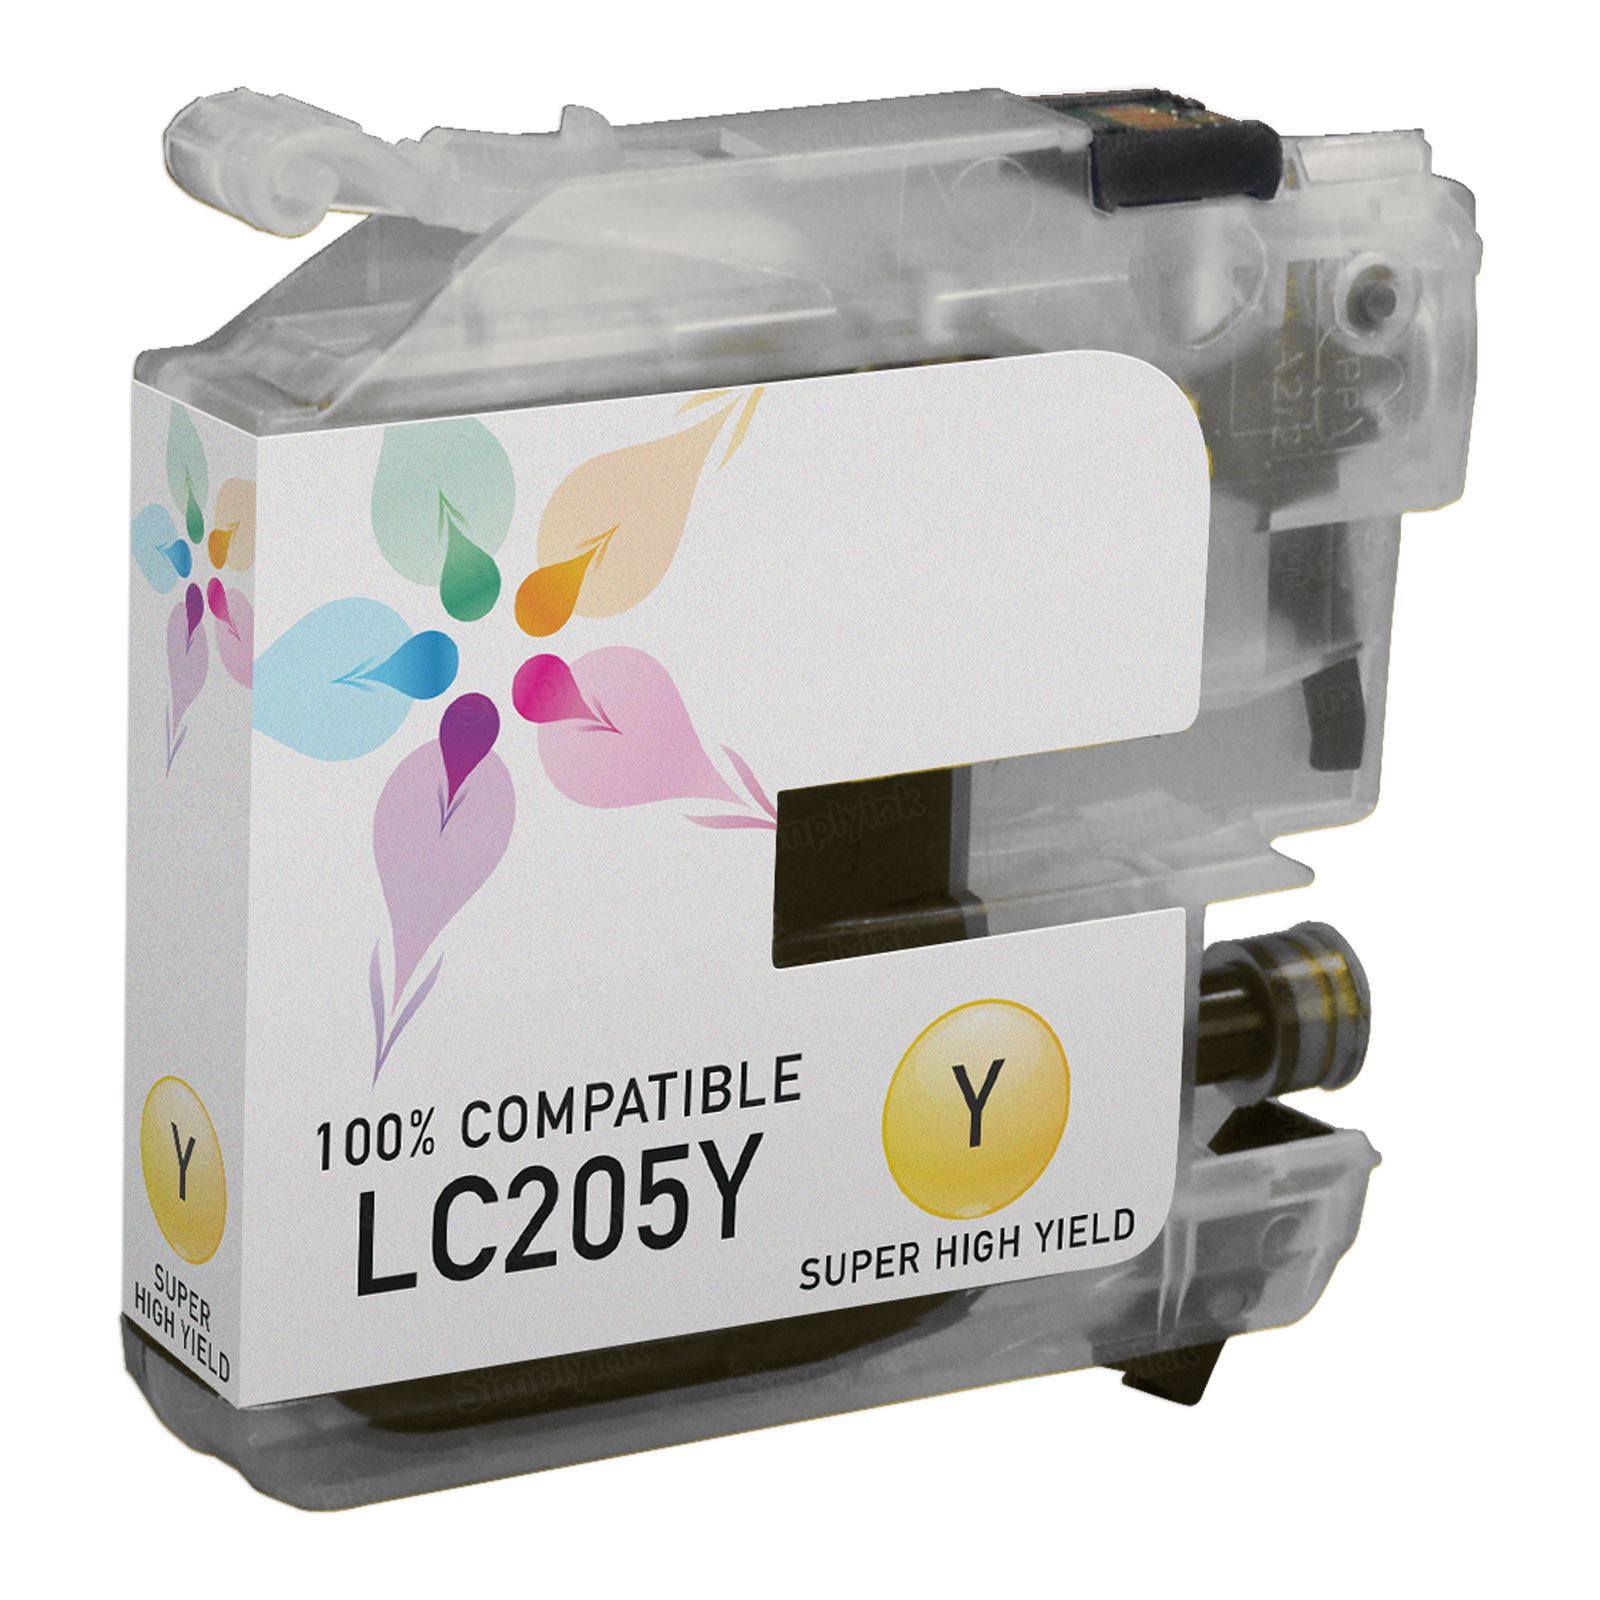 Compatible LC205Y Super HY Yellow Ink for Brother